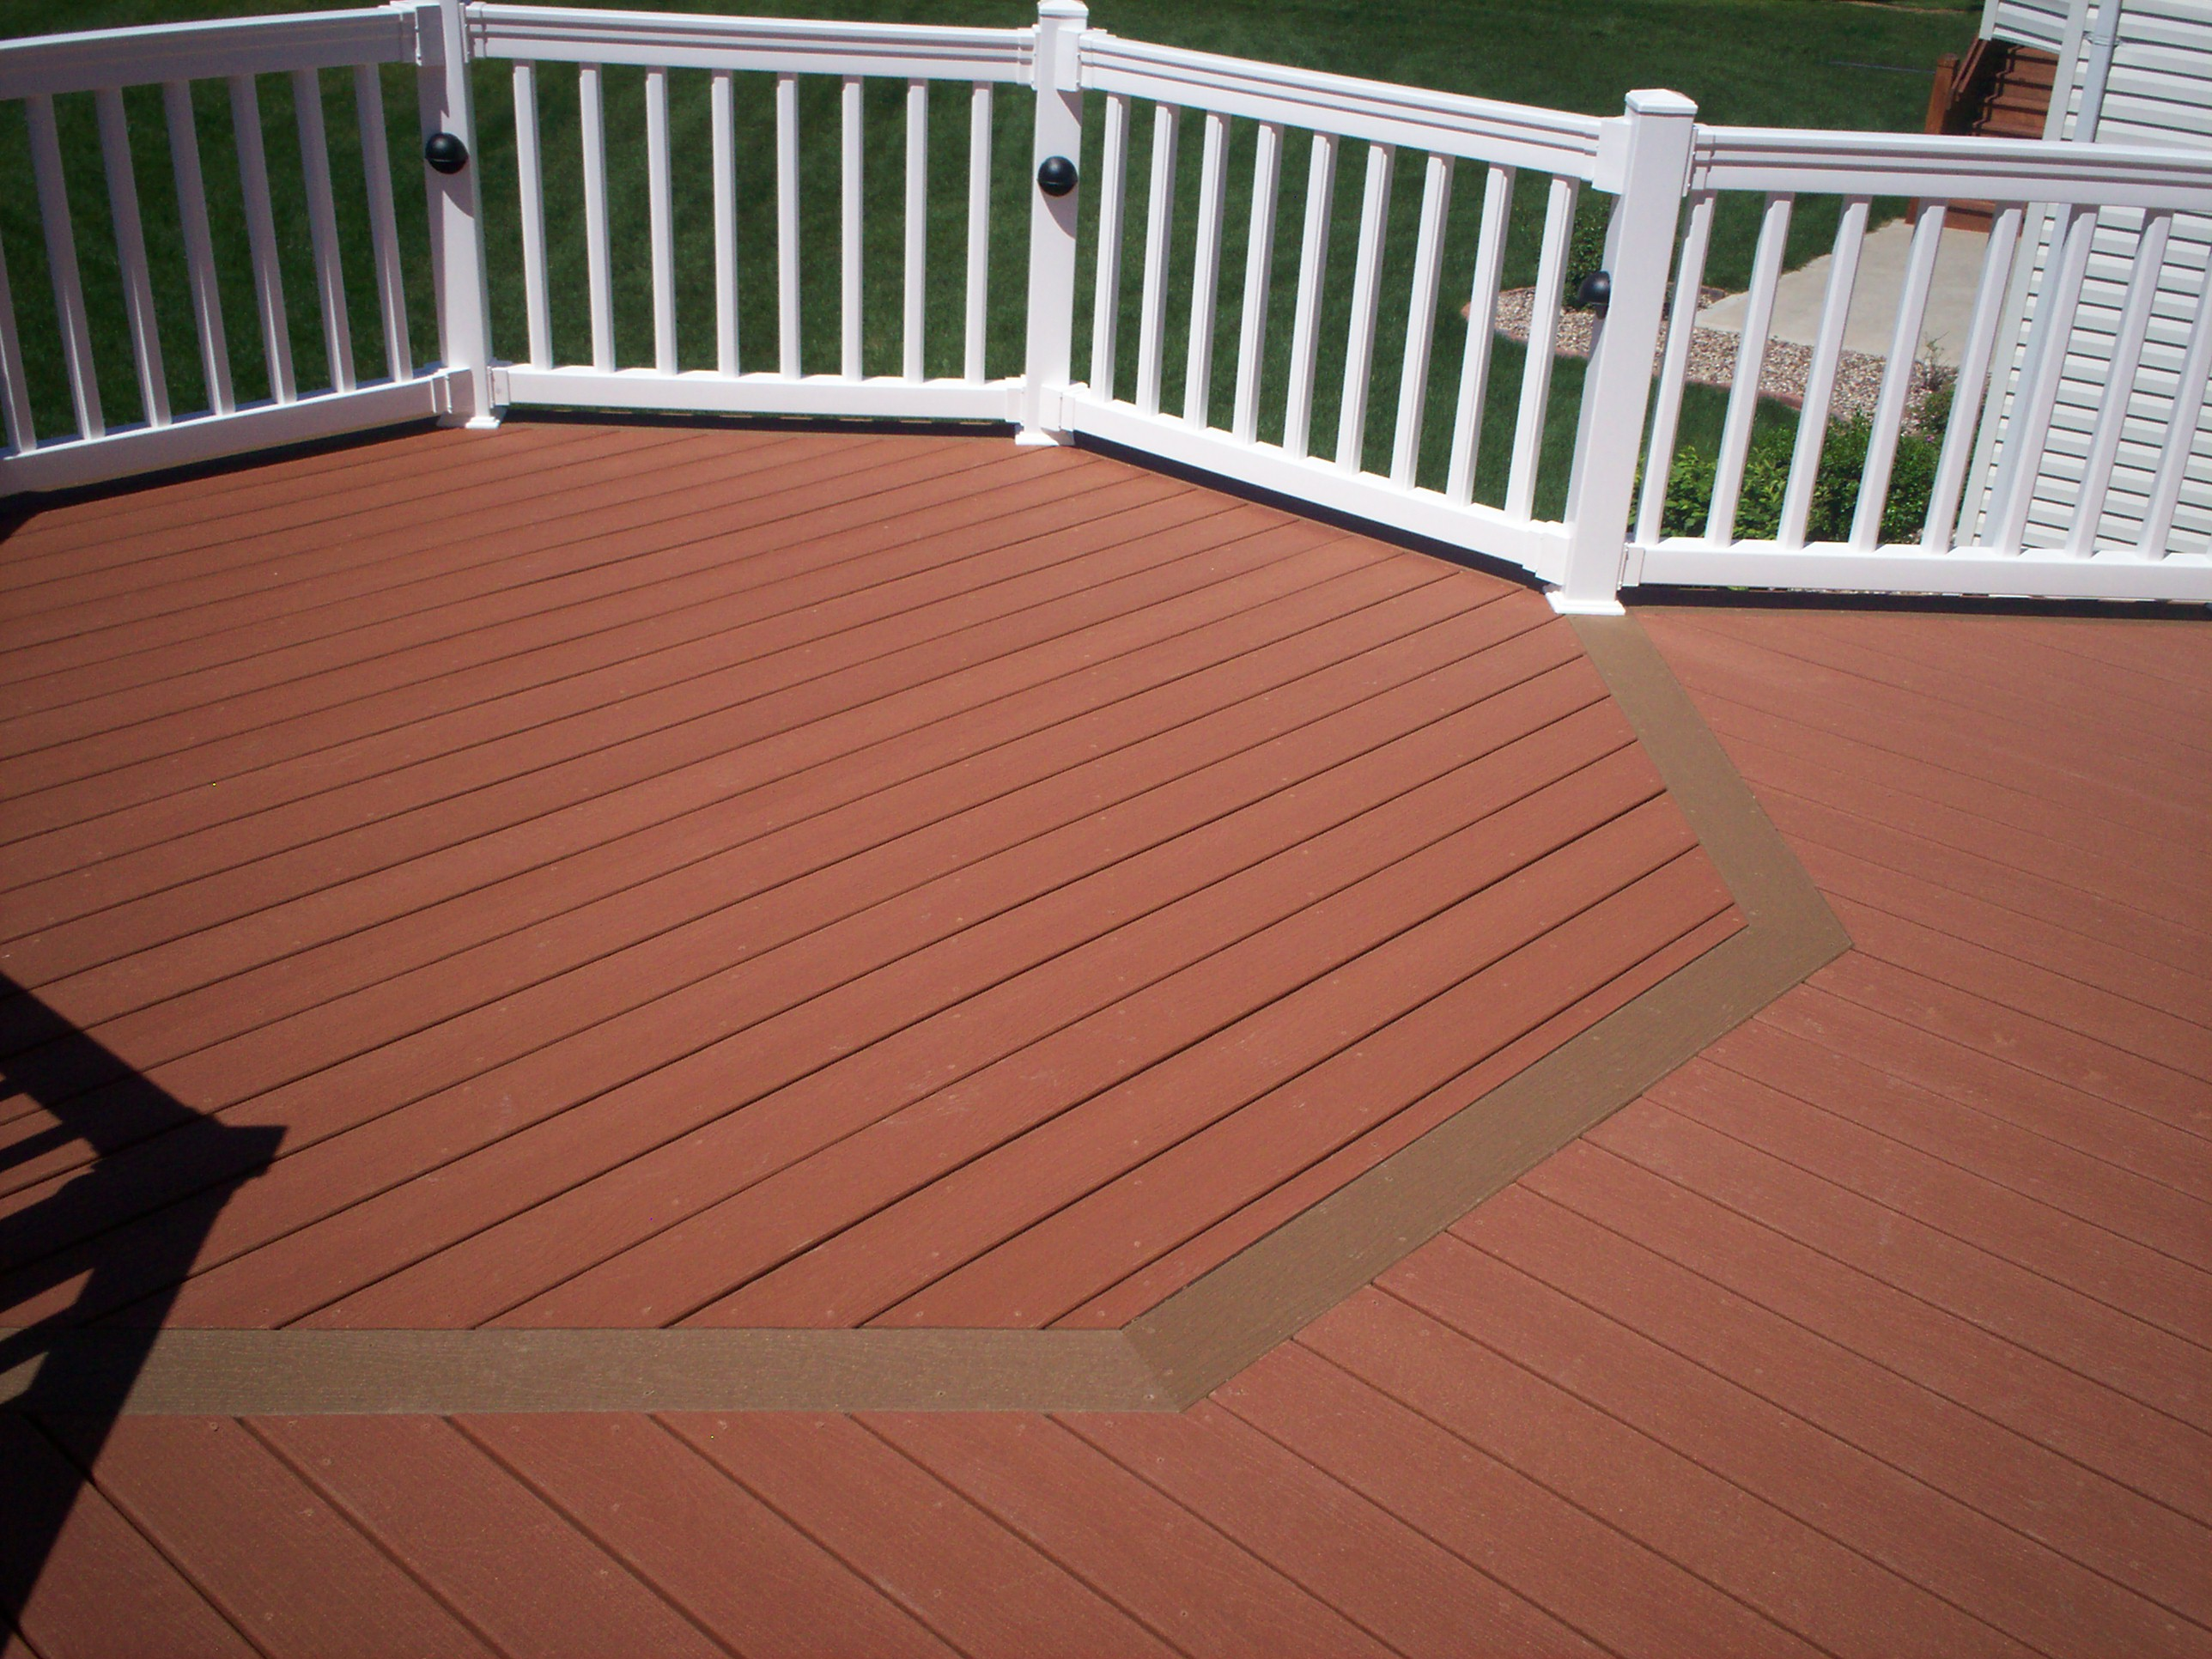 Composite deck composite decking st louis Composite flooring for decks